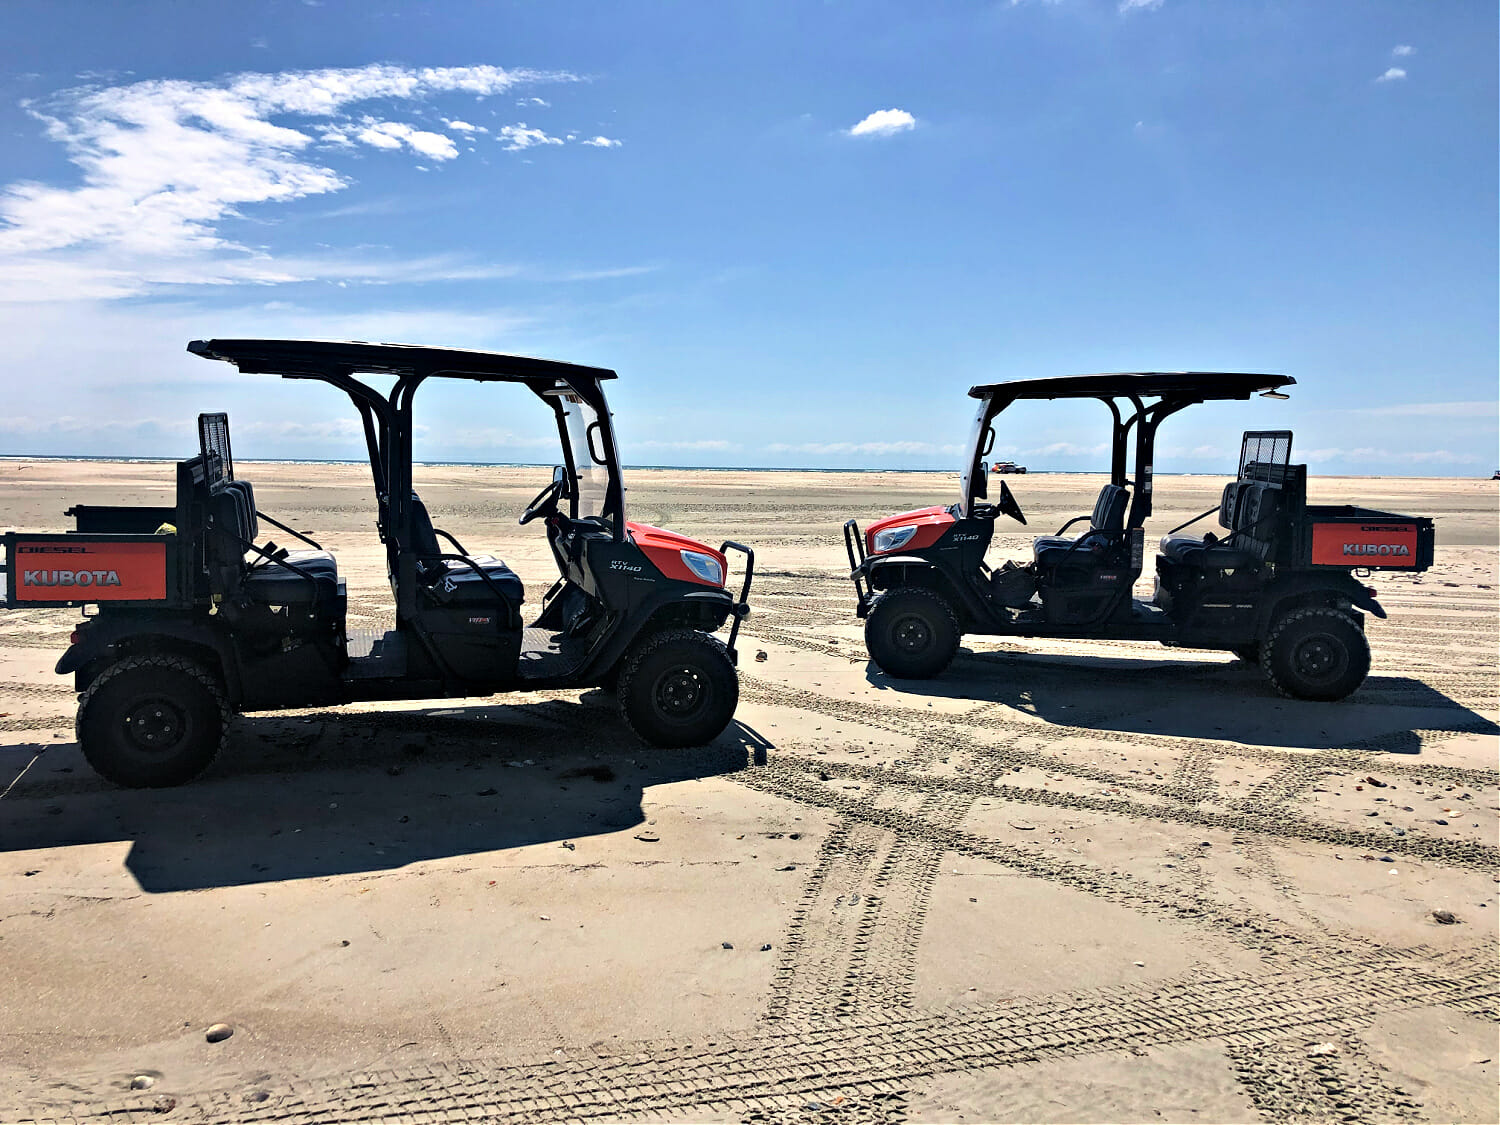 Two multiple seat all terrain vehicles on a beach